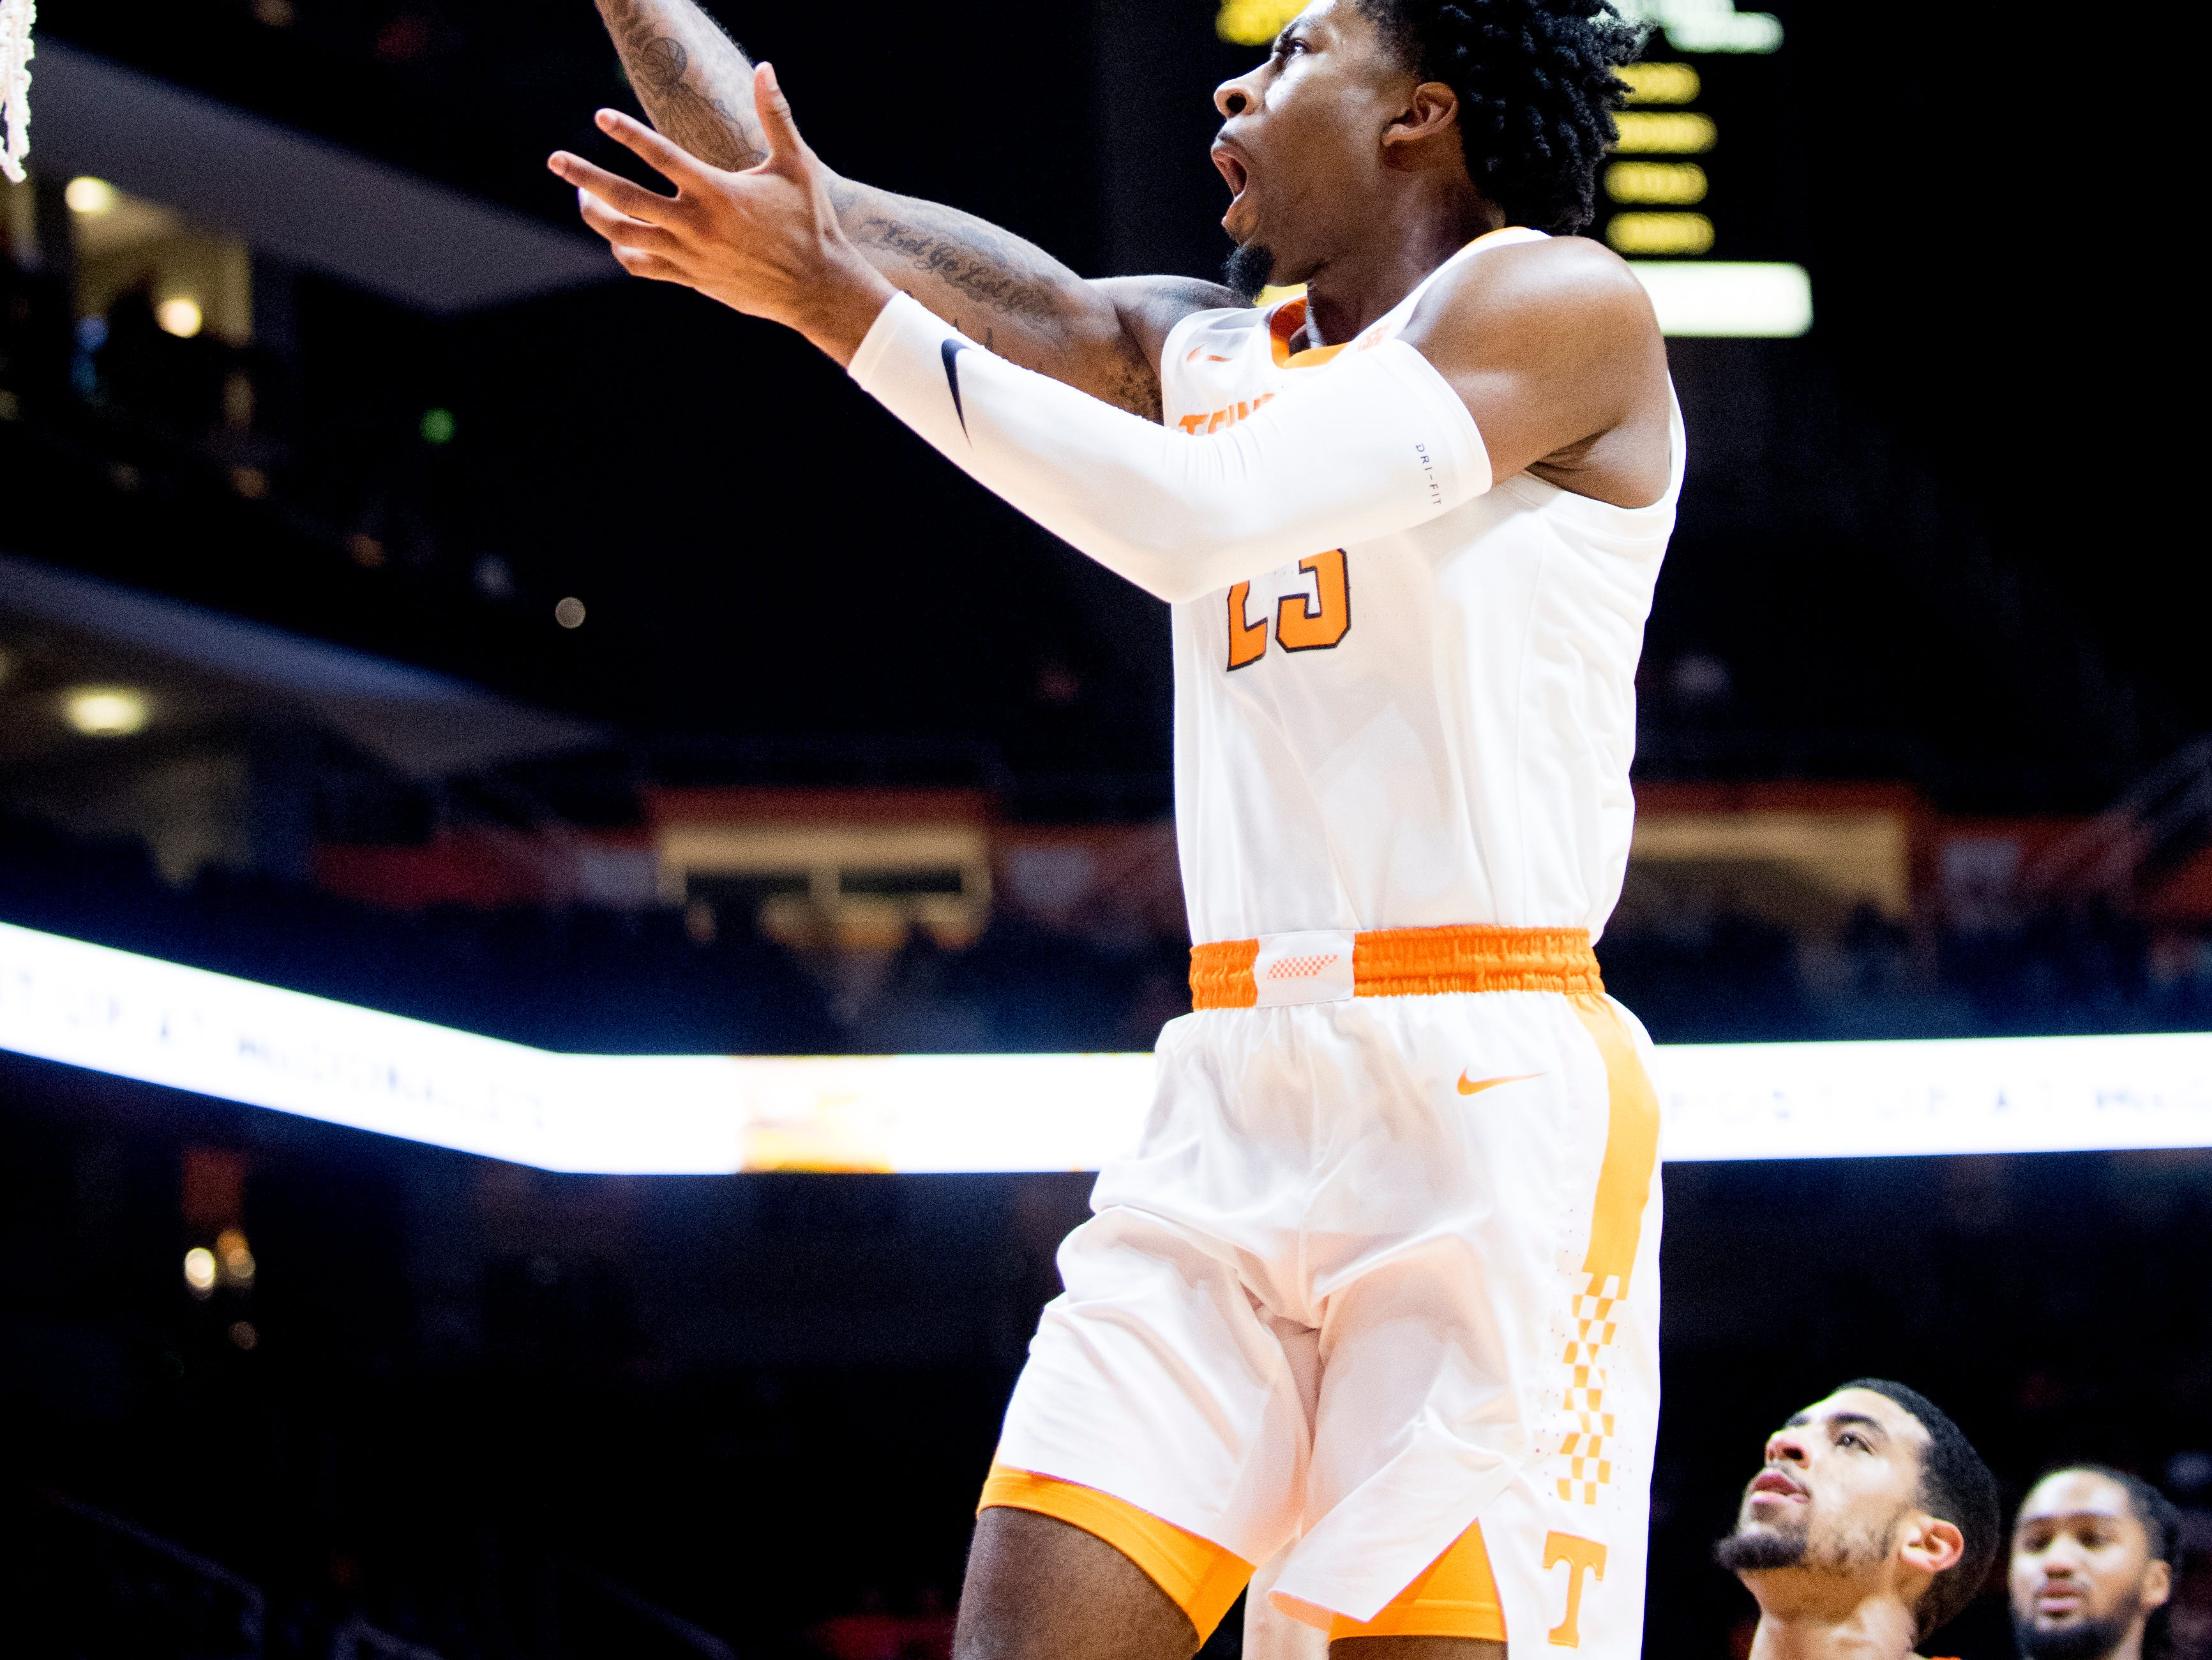 Tennessee guard Jordan Bowden (23) goes for a layup during a game between Tennessee and Tusculum at Thompson-Boling Arena in Knoxville, Tennessee on Wednesday, October 31, 2018.